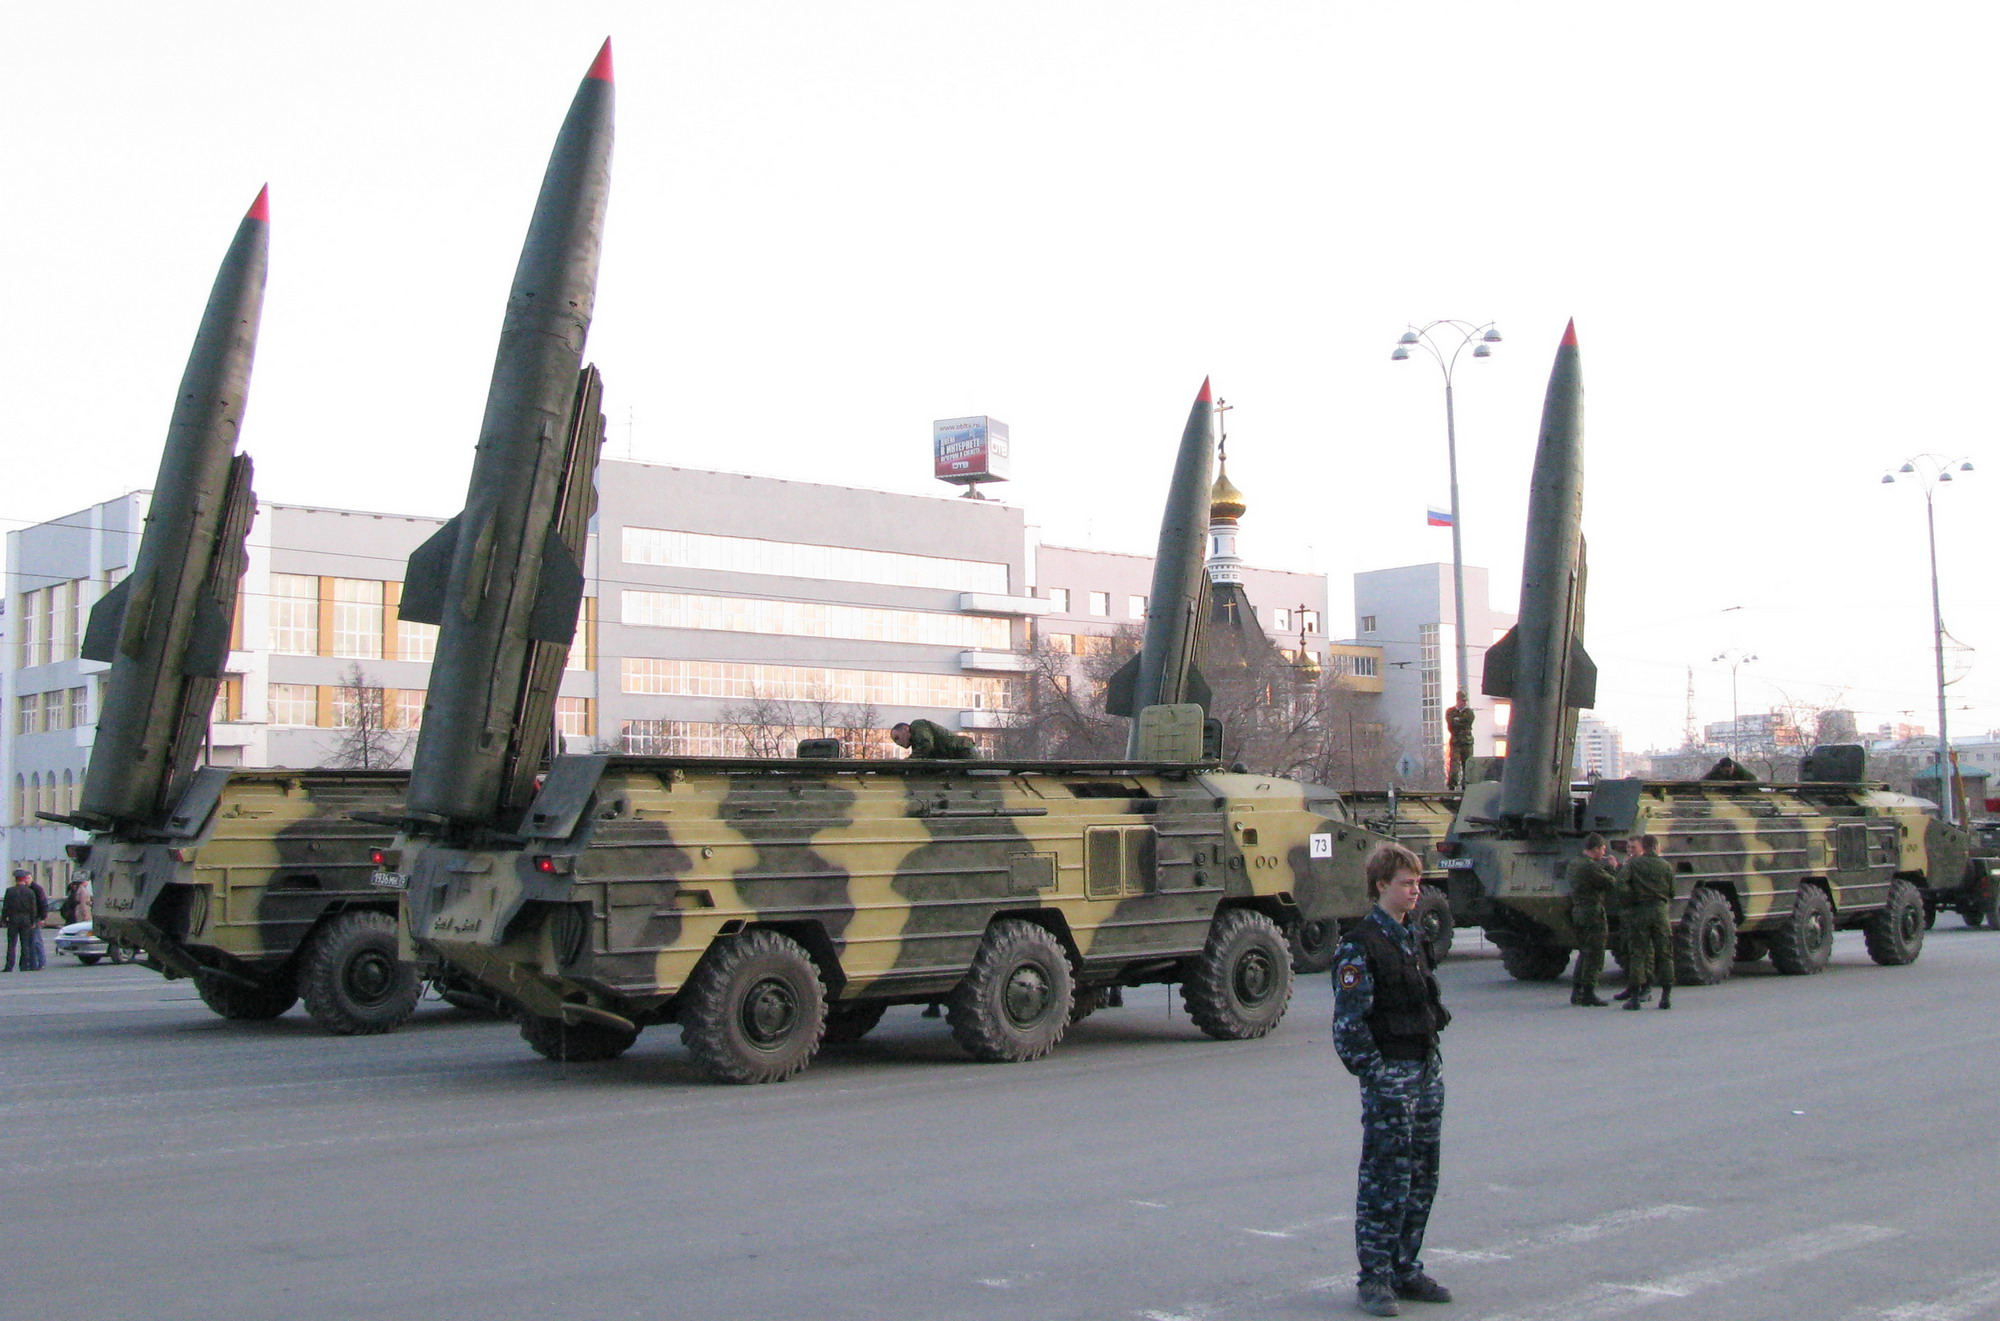 Tochka ballistic missile systems on parade.